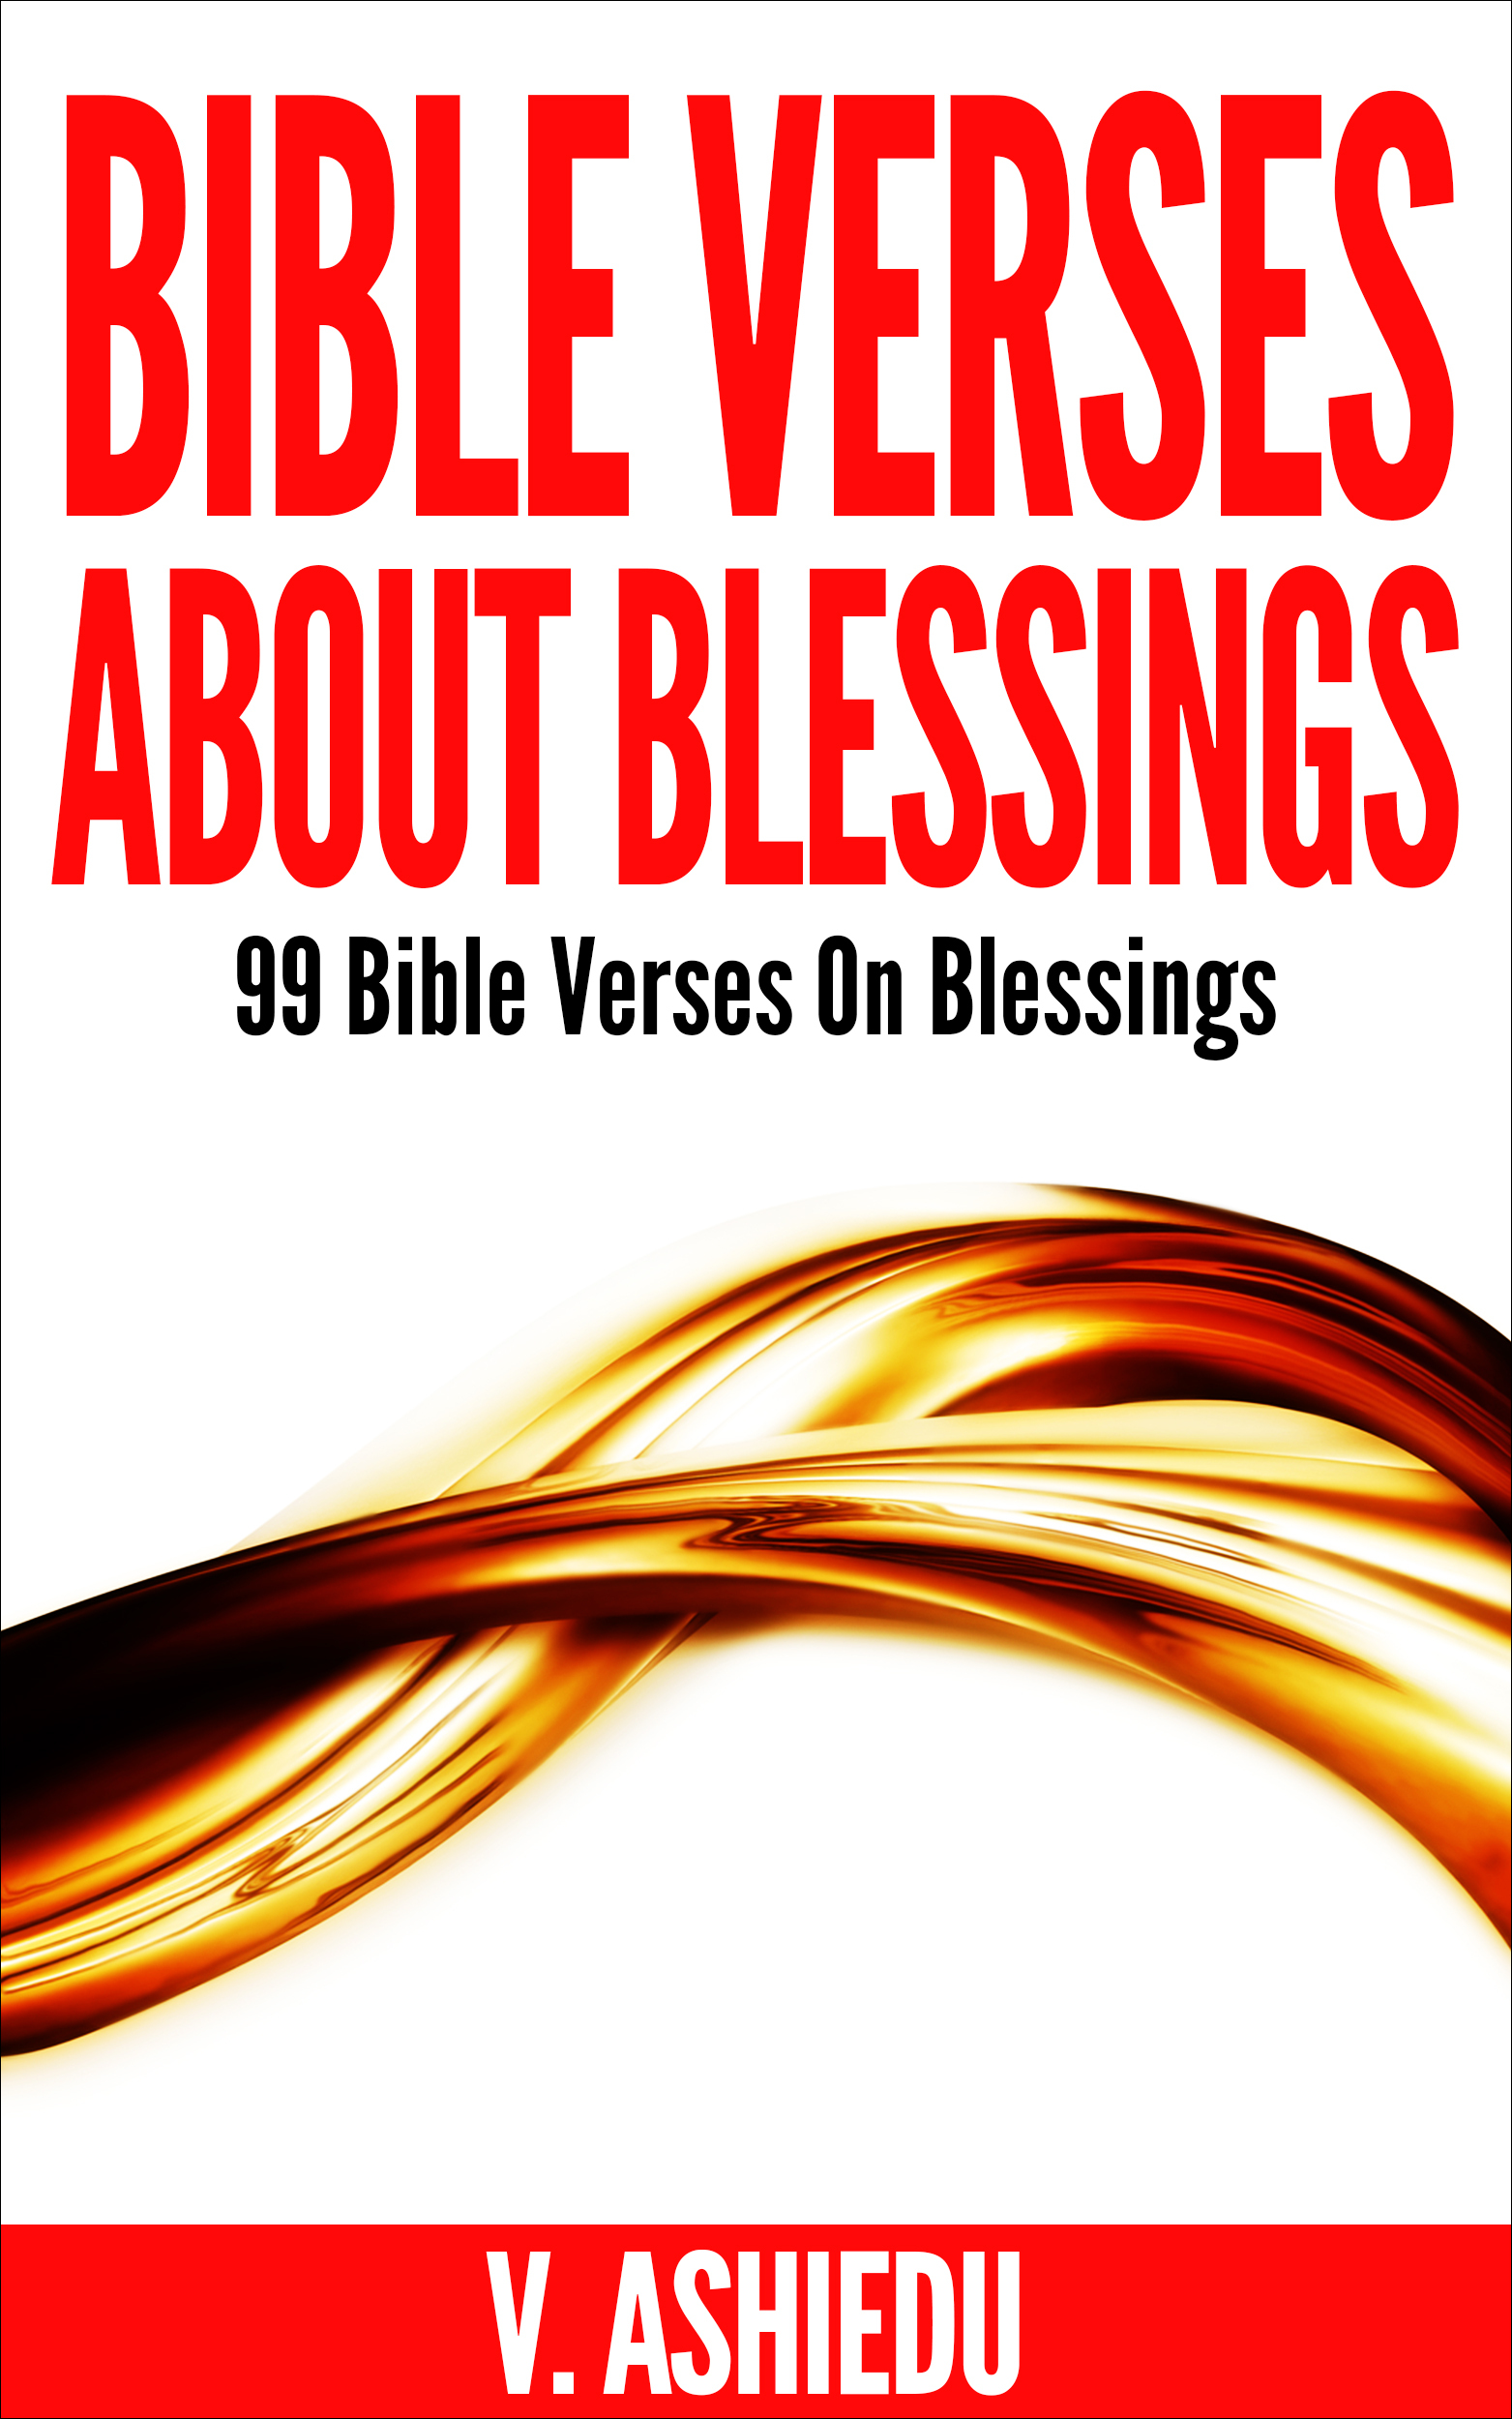 Bible Verses About Blessings: 99 Bible Verses on Blessings  by  V. Ashiedu